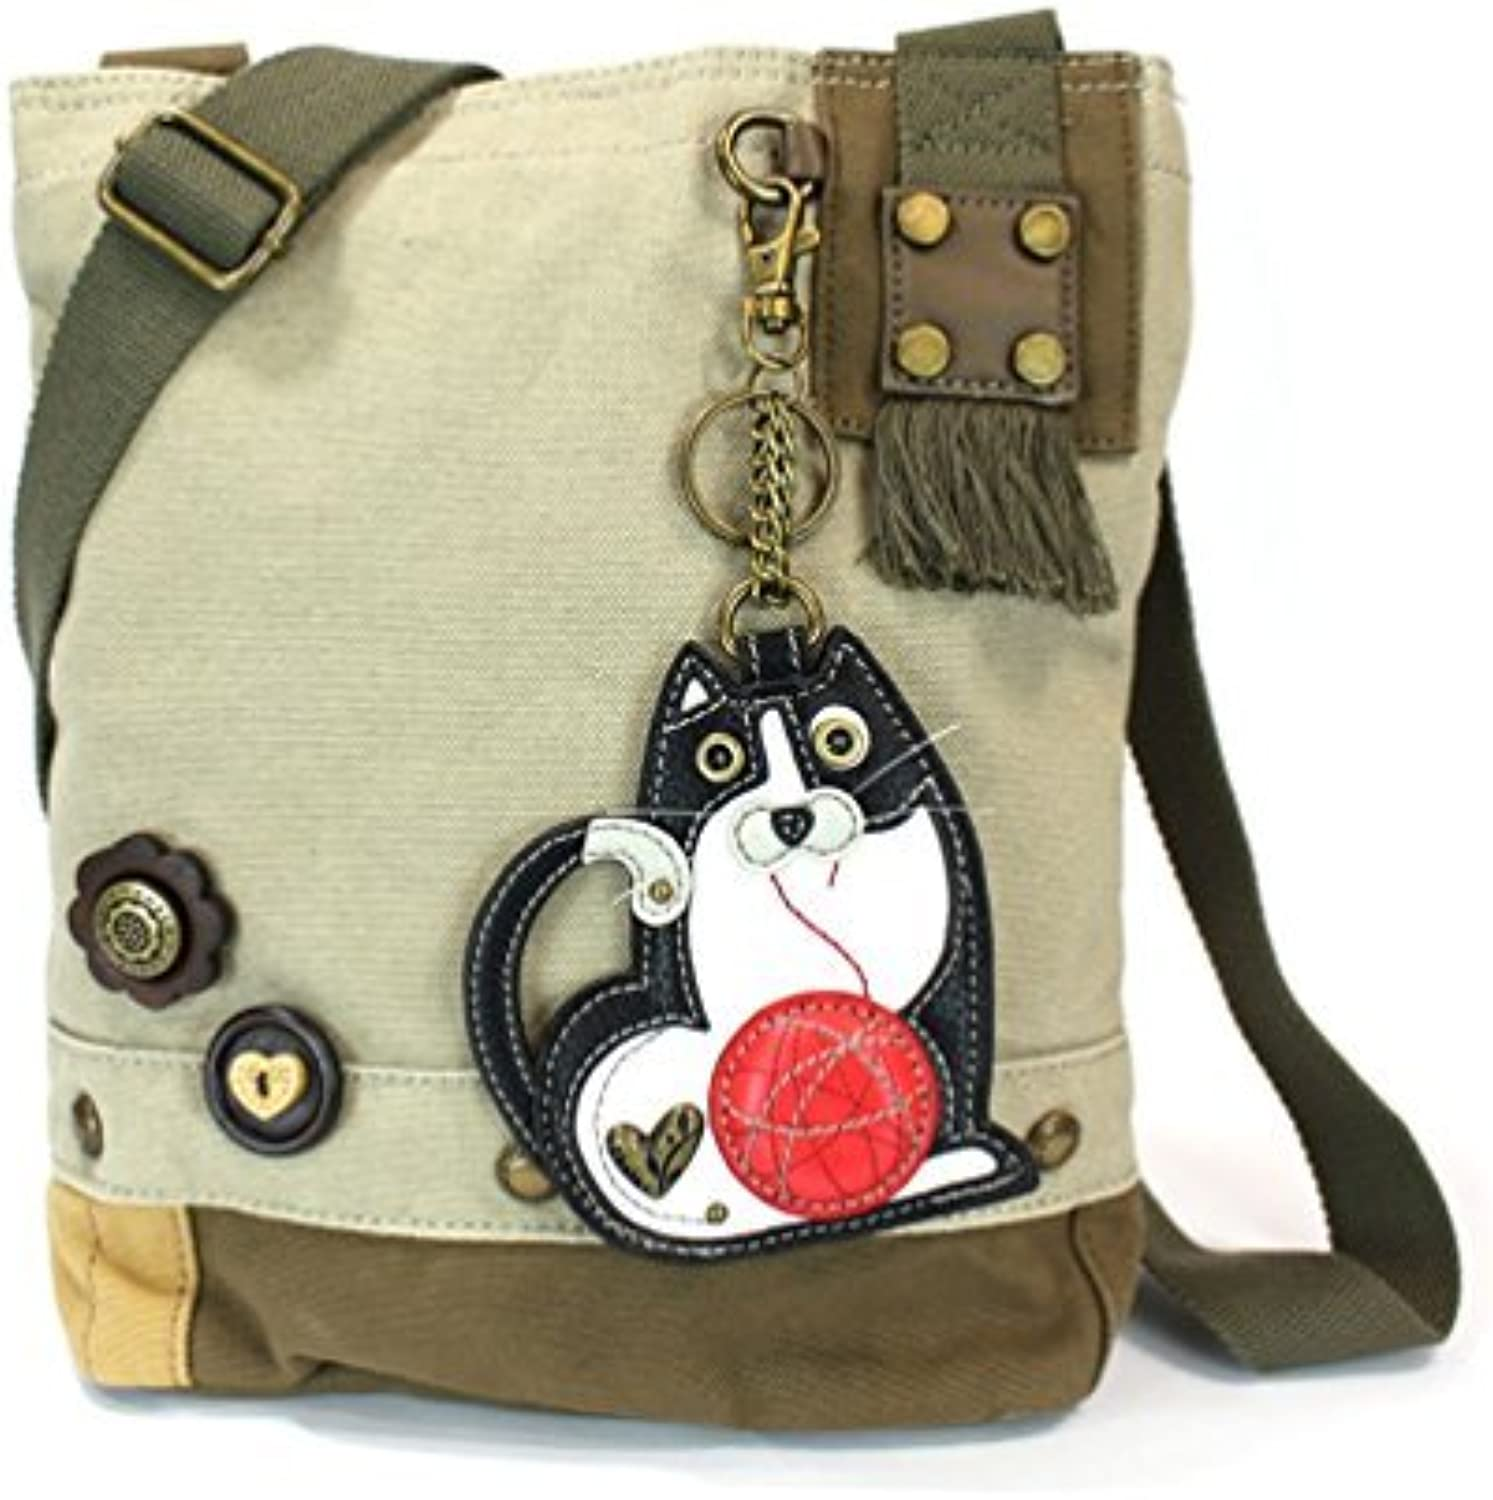 Chala Purse Handbag Sand Canvas Crossbody with Key Chain Tote Bag Fat Cat